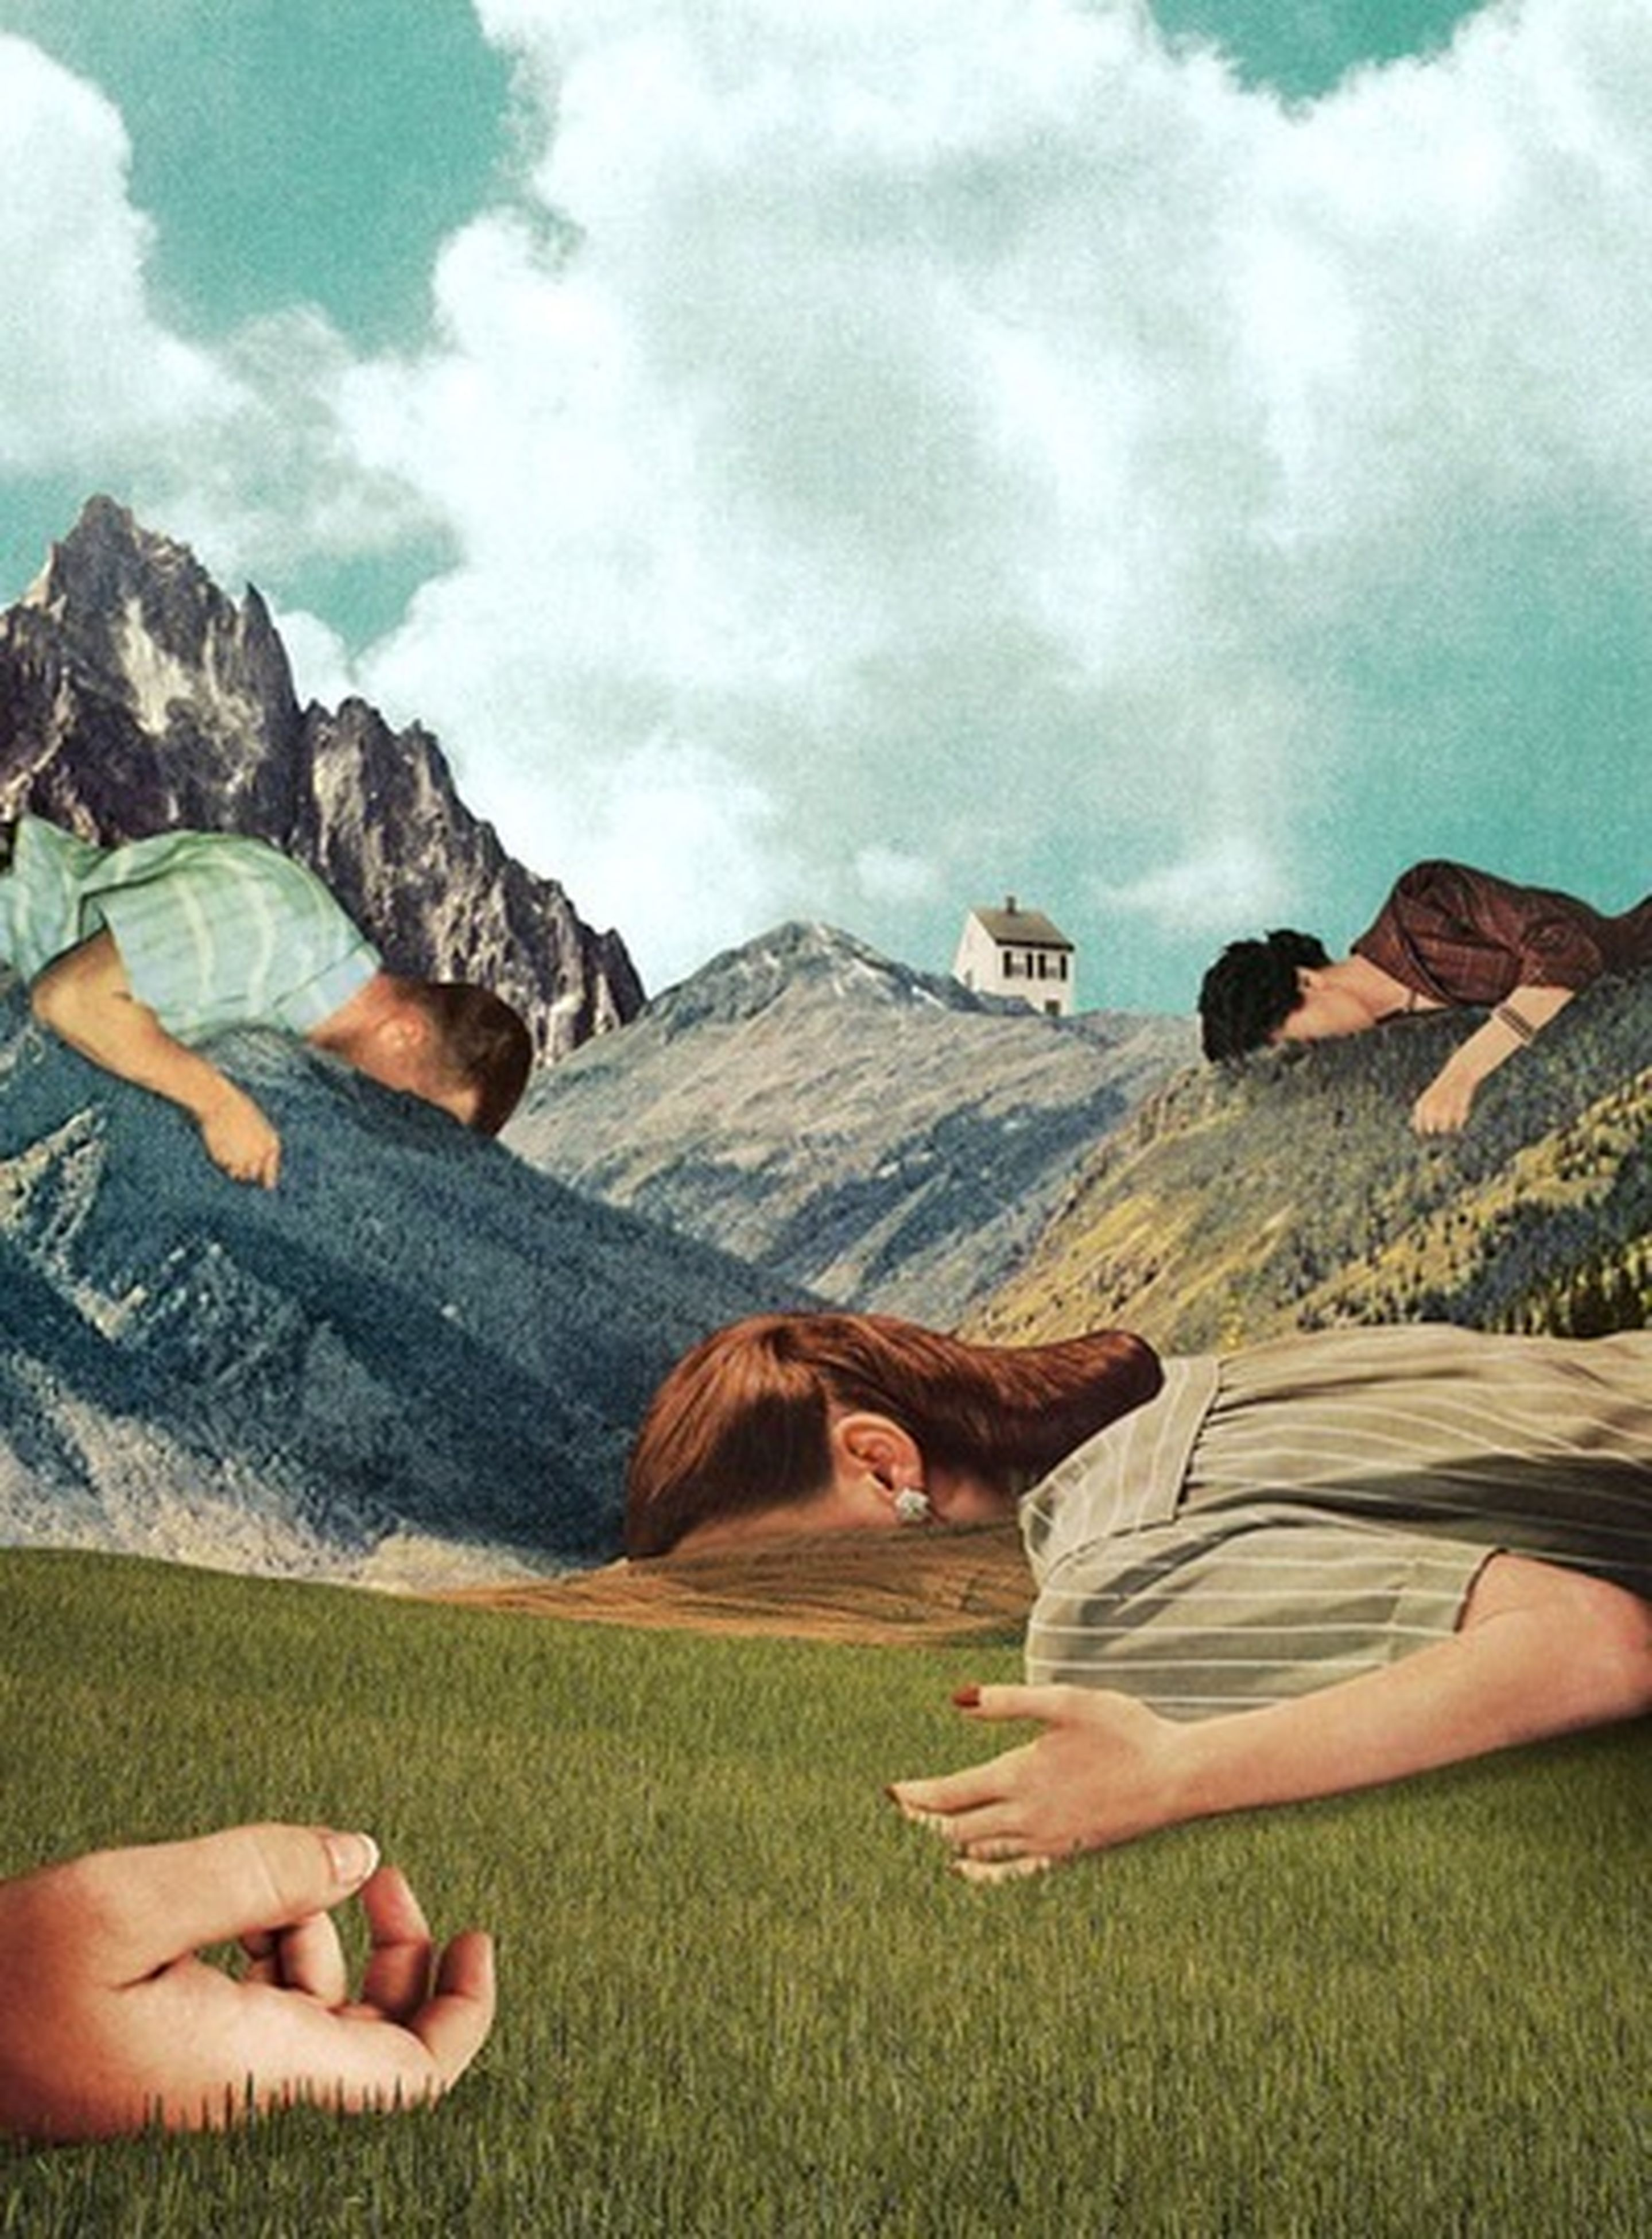 sky, lifestyles, leisure activity, grass, cloud - sky, relaxation, landscape, men, cloud, field, person, nature, cloudy, sitting, mountain, tranquil scene, tranquility